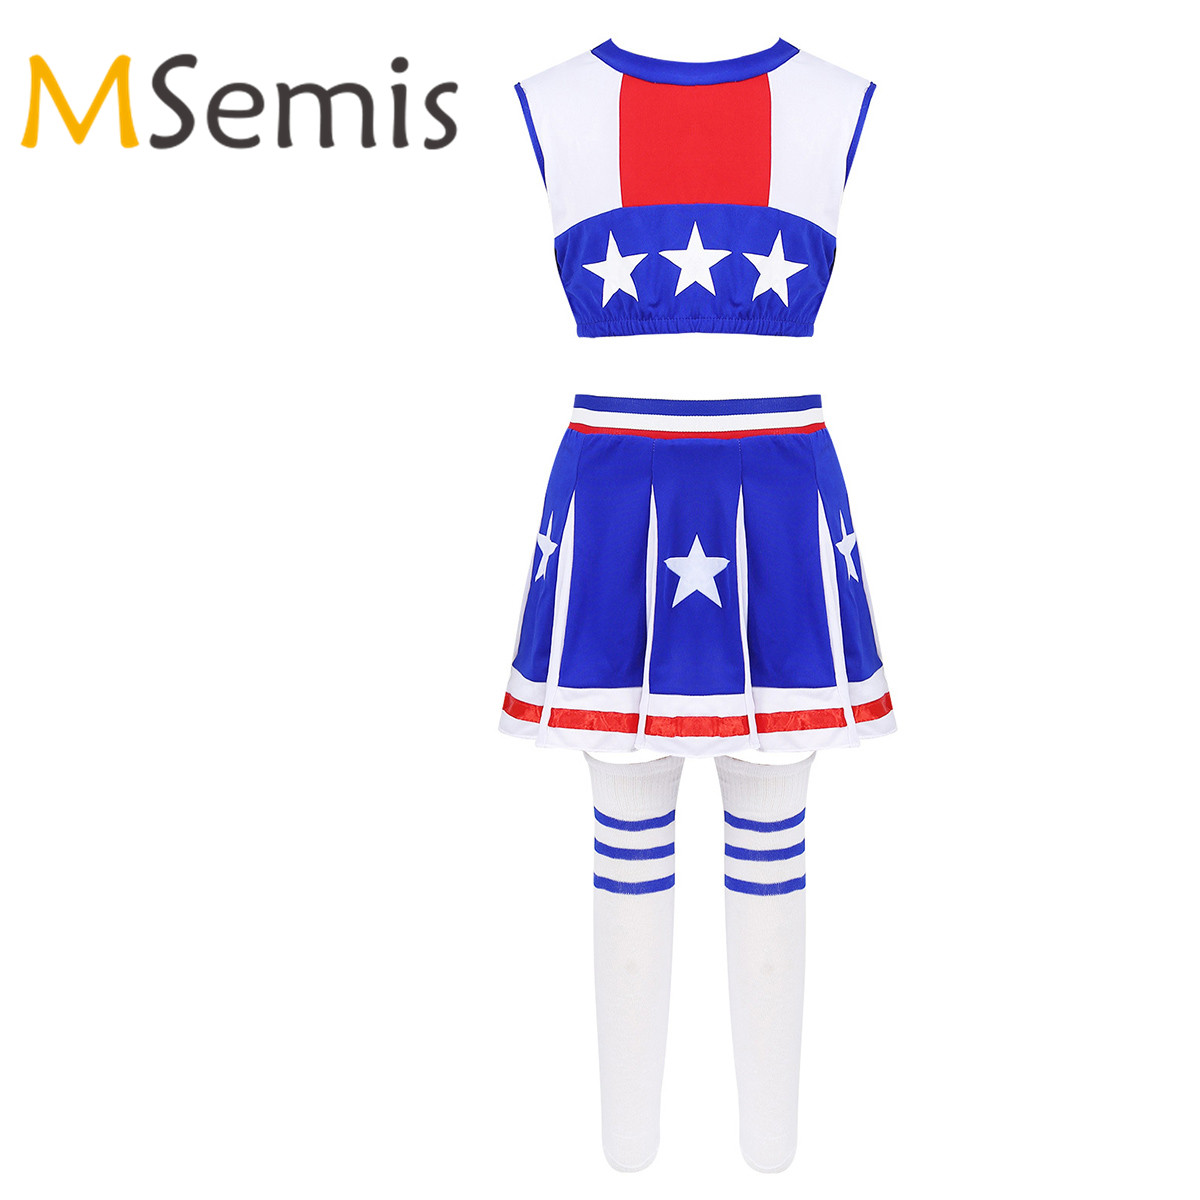 Worn Once USA Stars /& Stripes Lycra Cheerleader Costume age 8-10 Years Size 2